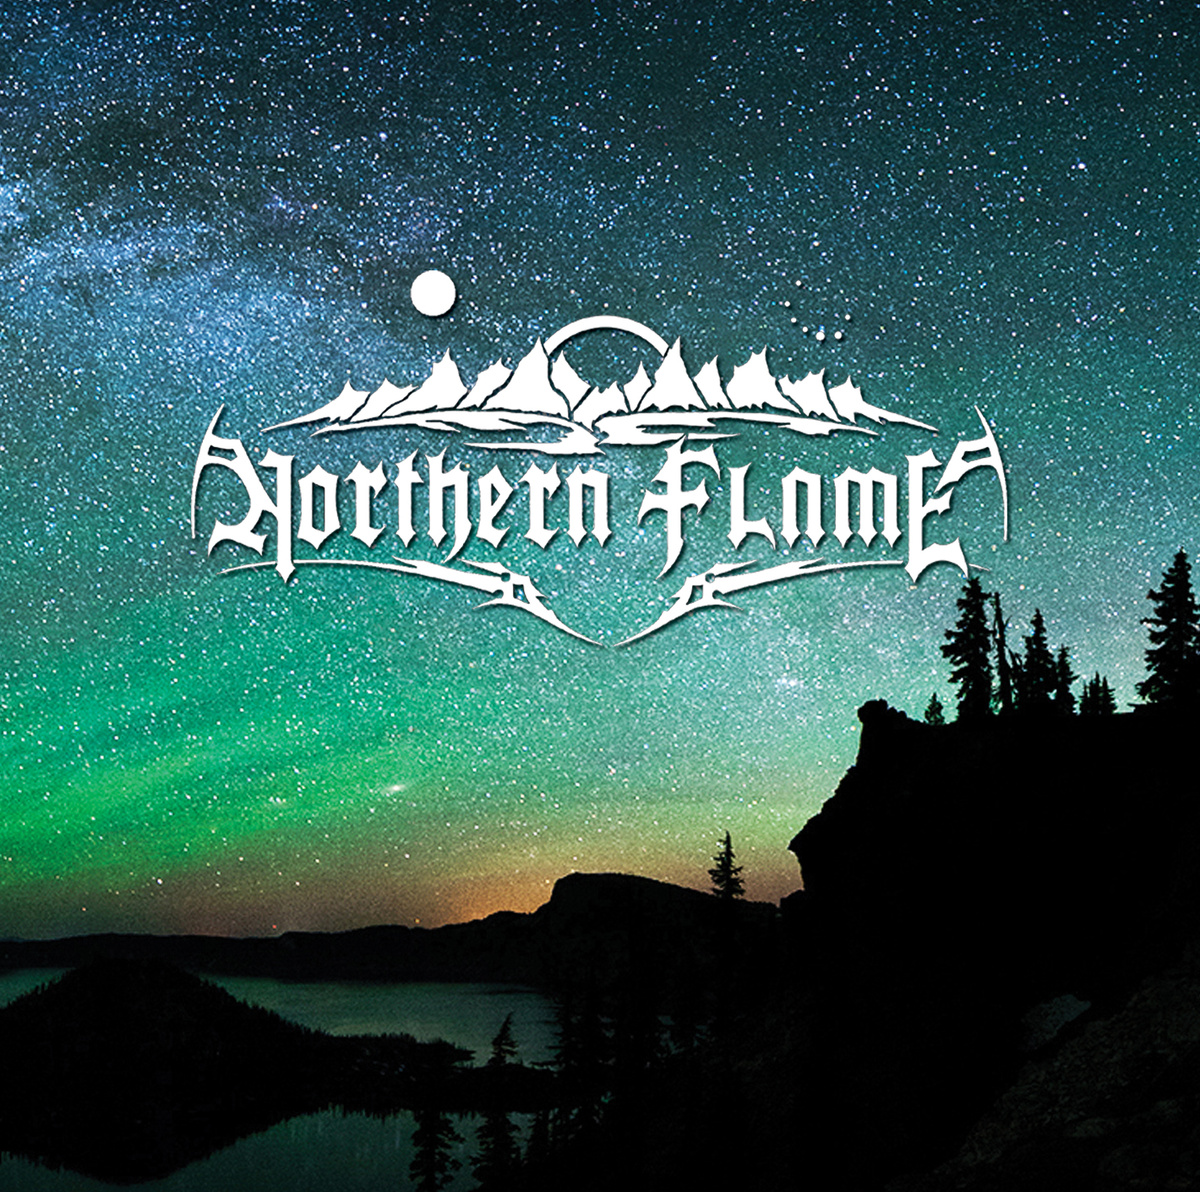 northern flame glimpse of hope